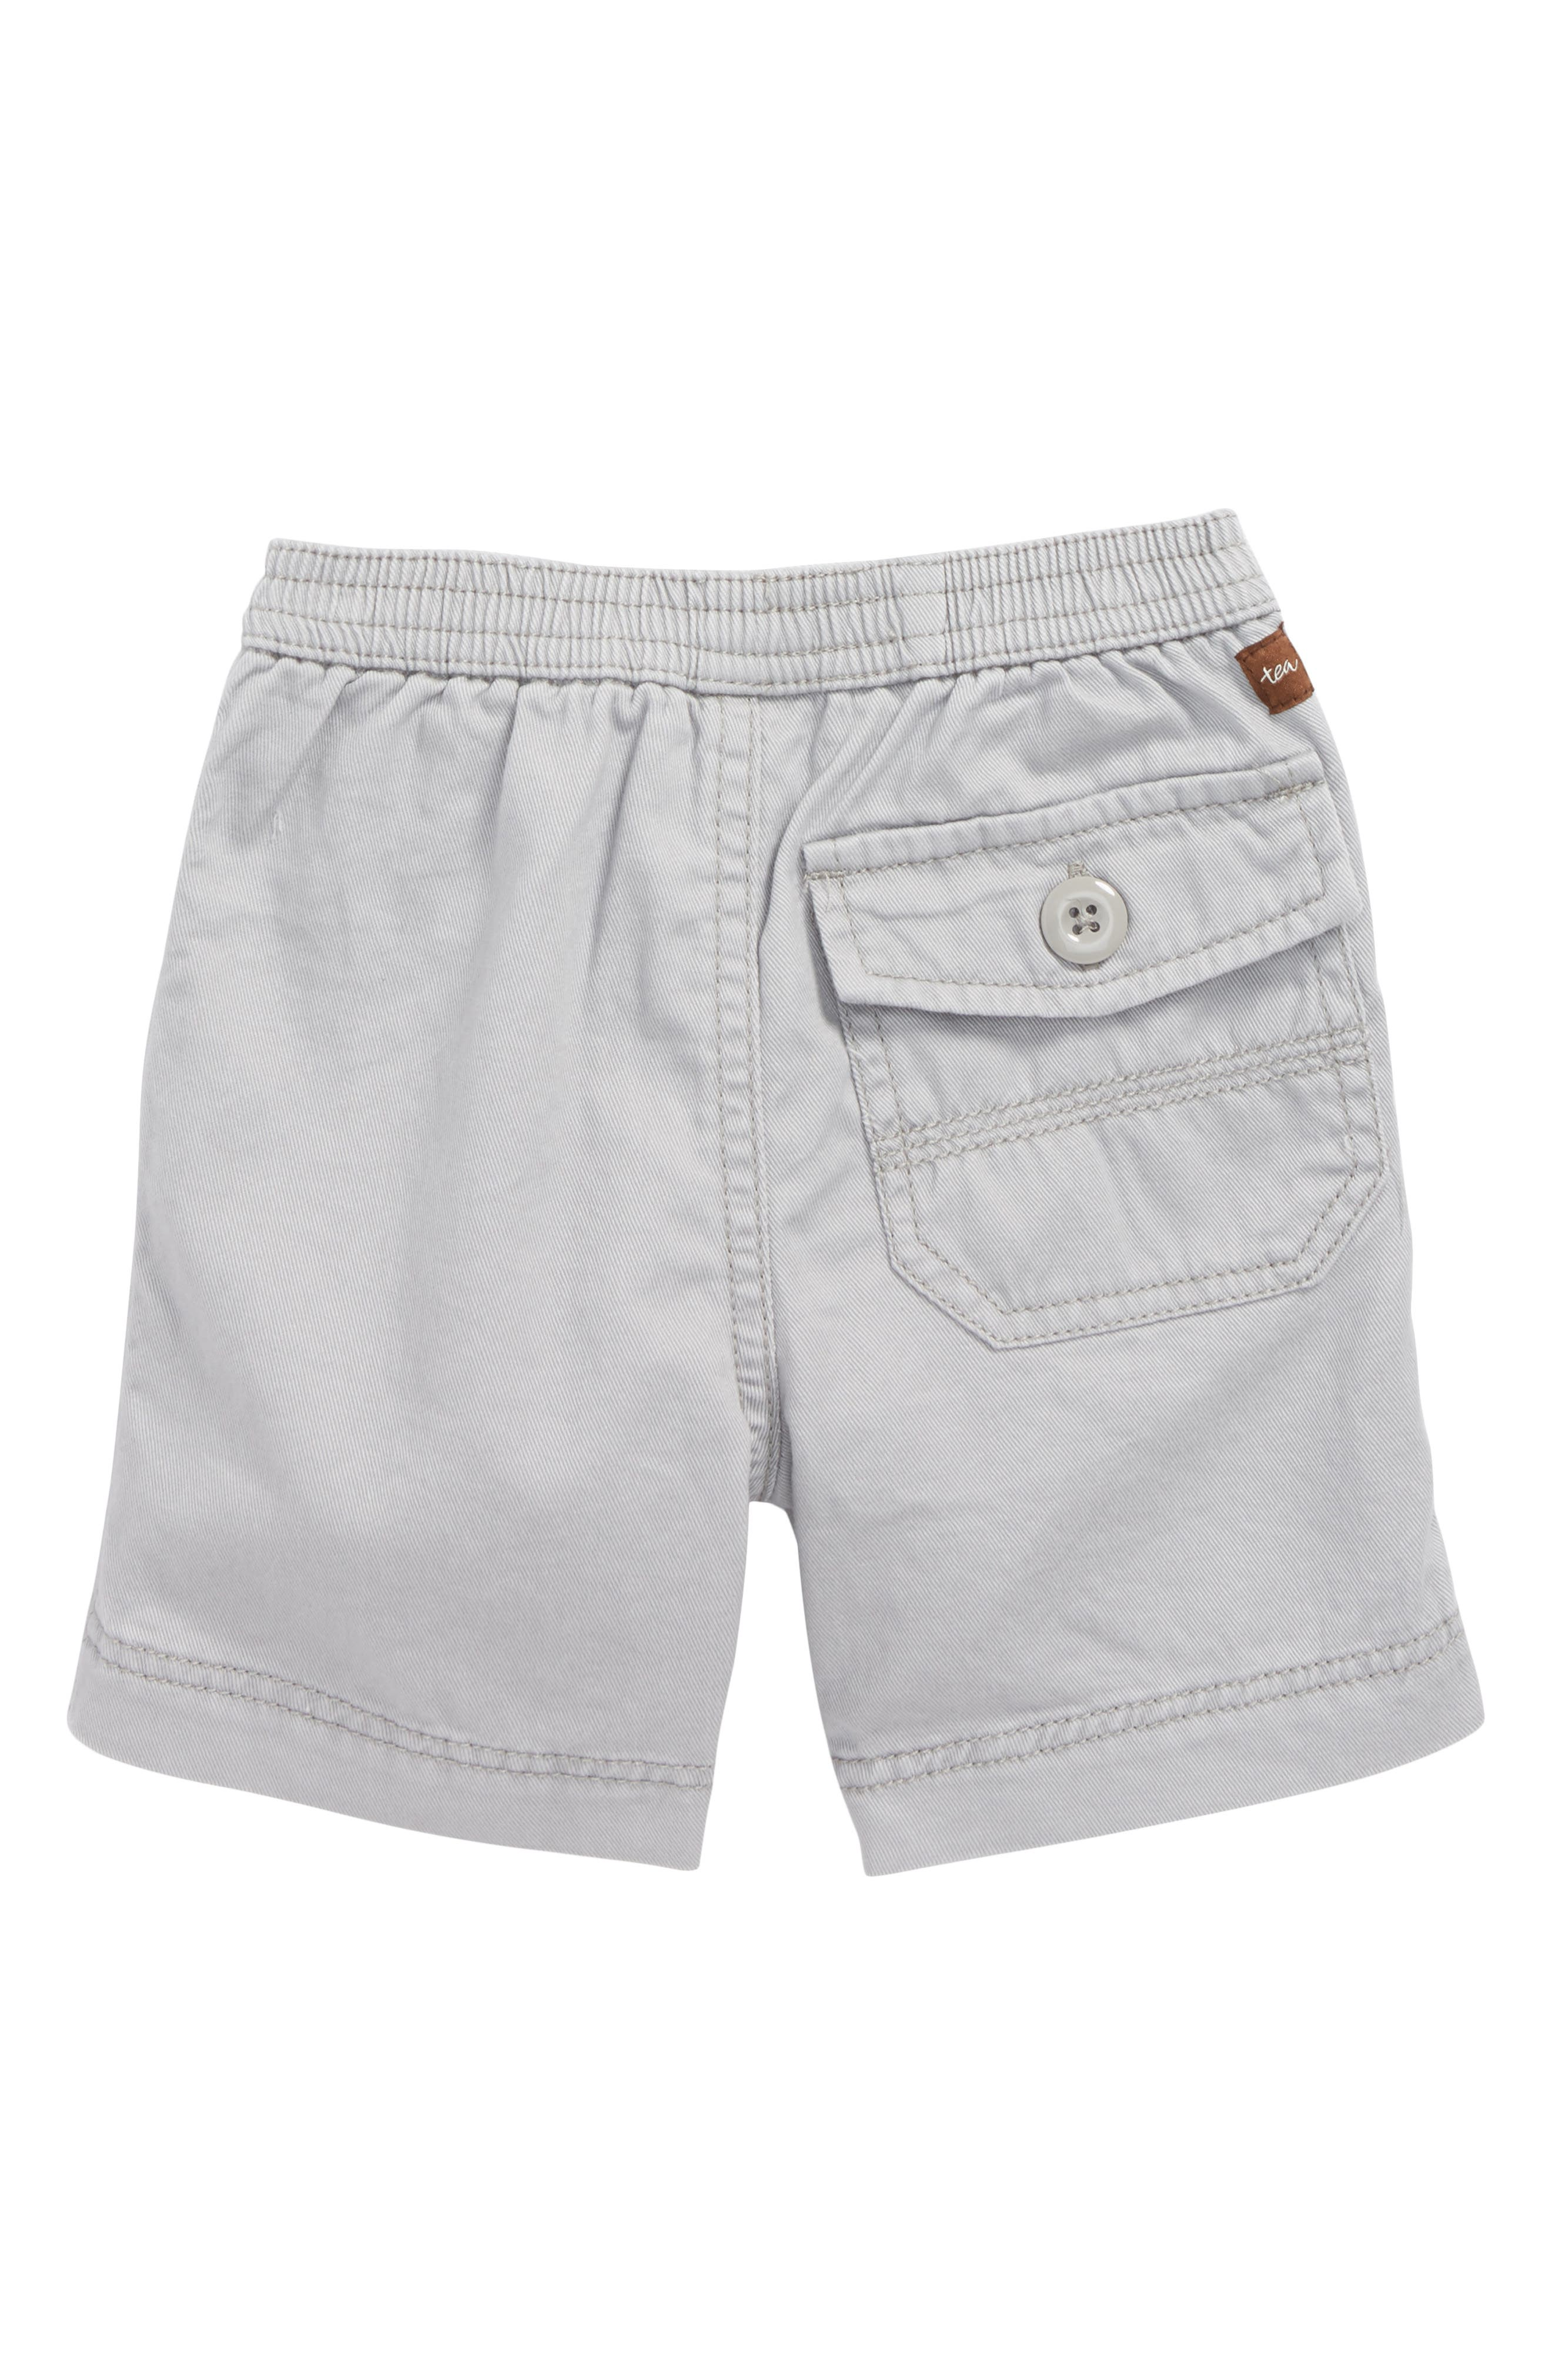 Easy Does It Twill Shorts,                             Alternate thumbnail 2, color,                             Storm Grey